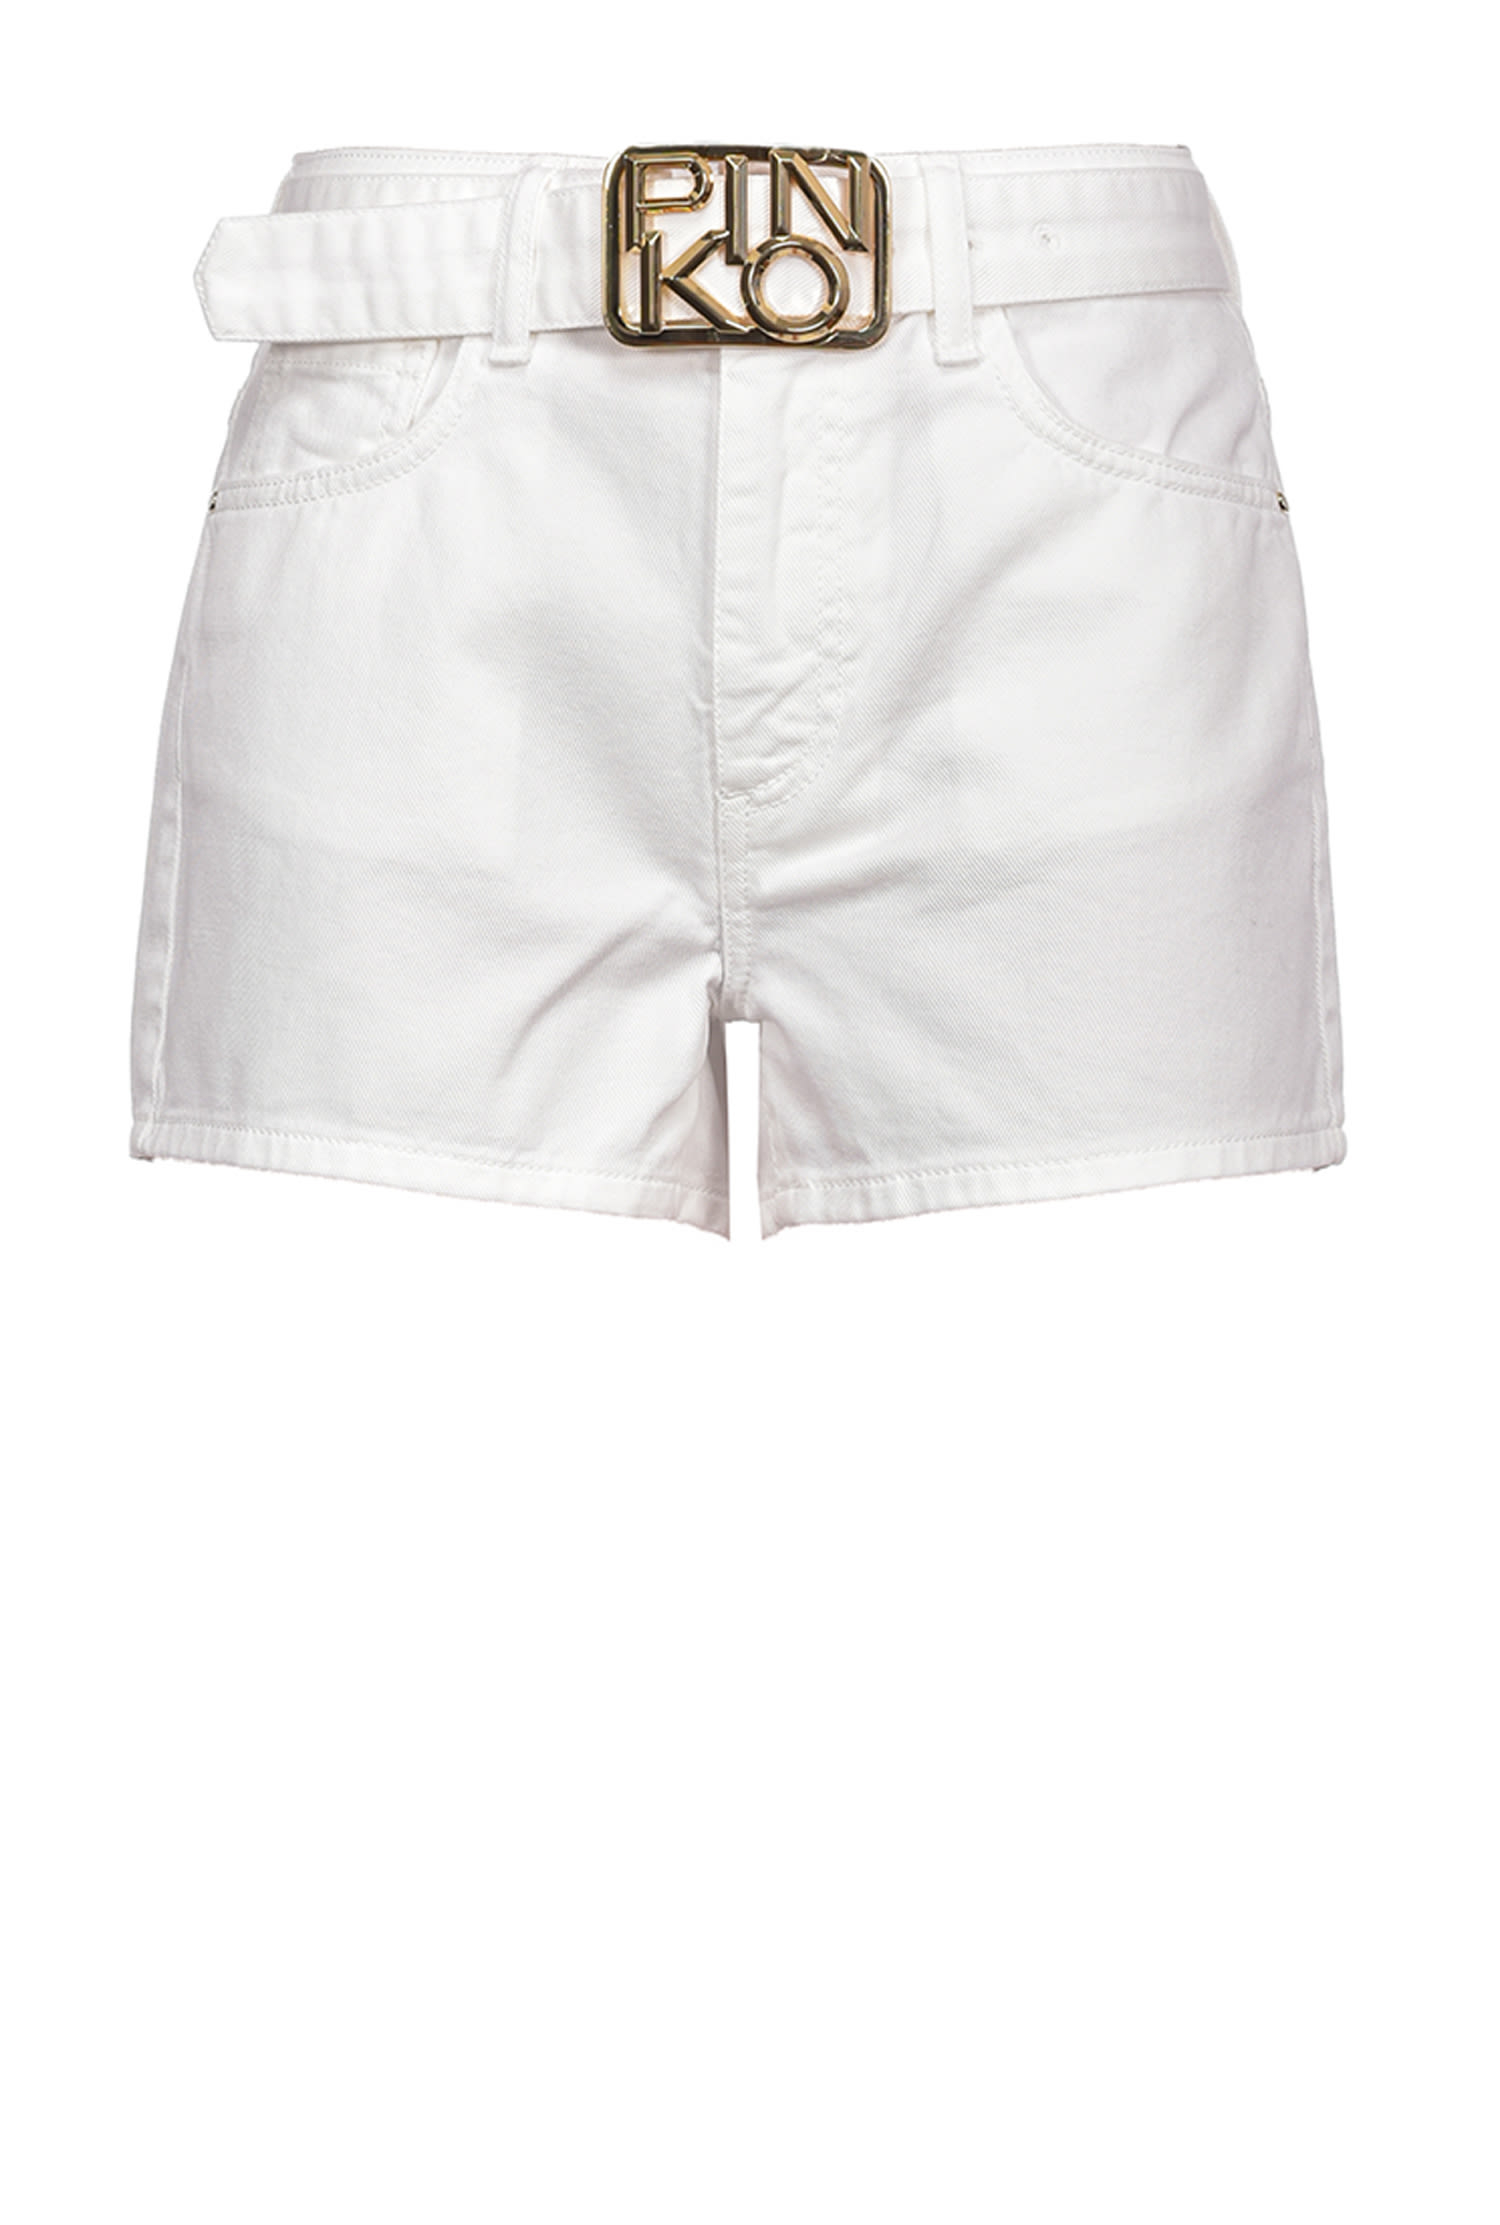 SHOPPING ON LINE SHORTS CON FIBBIA LOGO BROOKLYN 1 NEW COLLECTION WOMEN'S SPRING SUMMER 2021